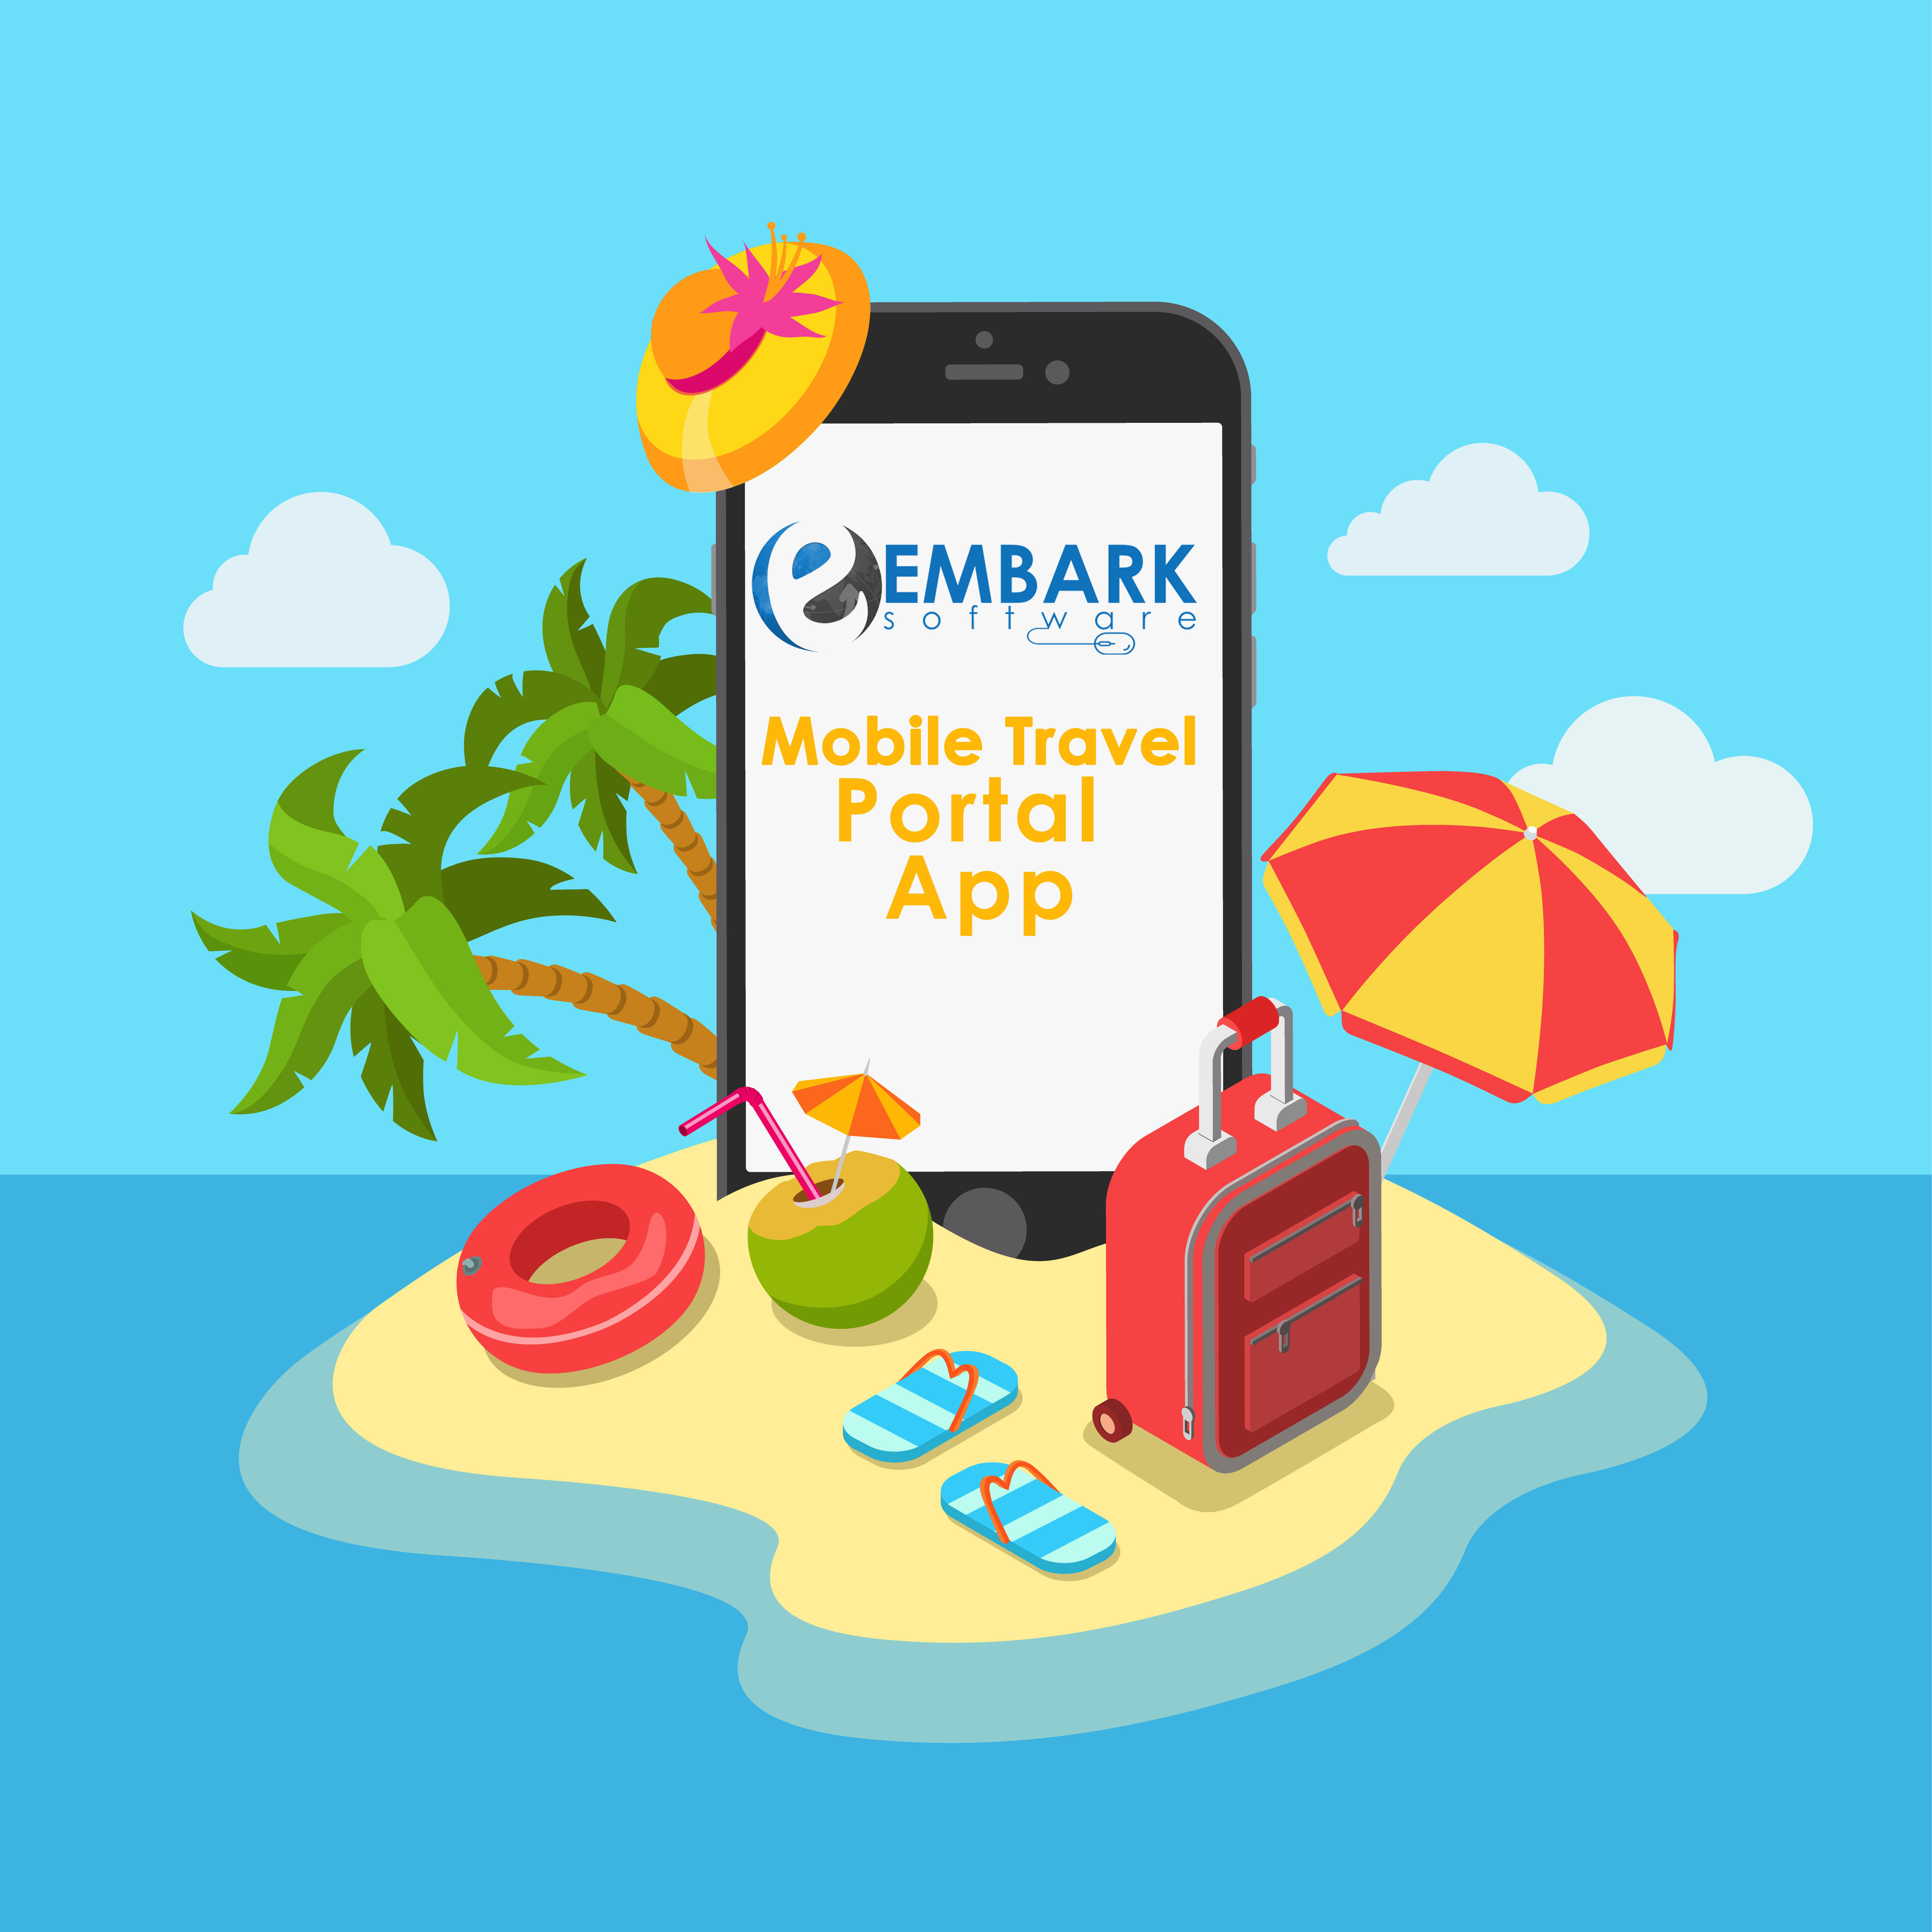 Why Do You Need A Mobile Travel Portal App?